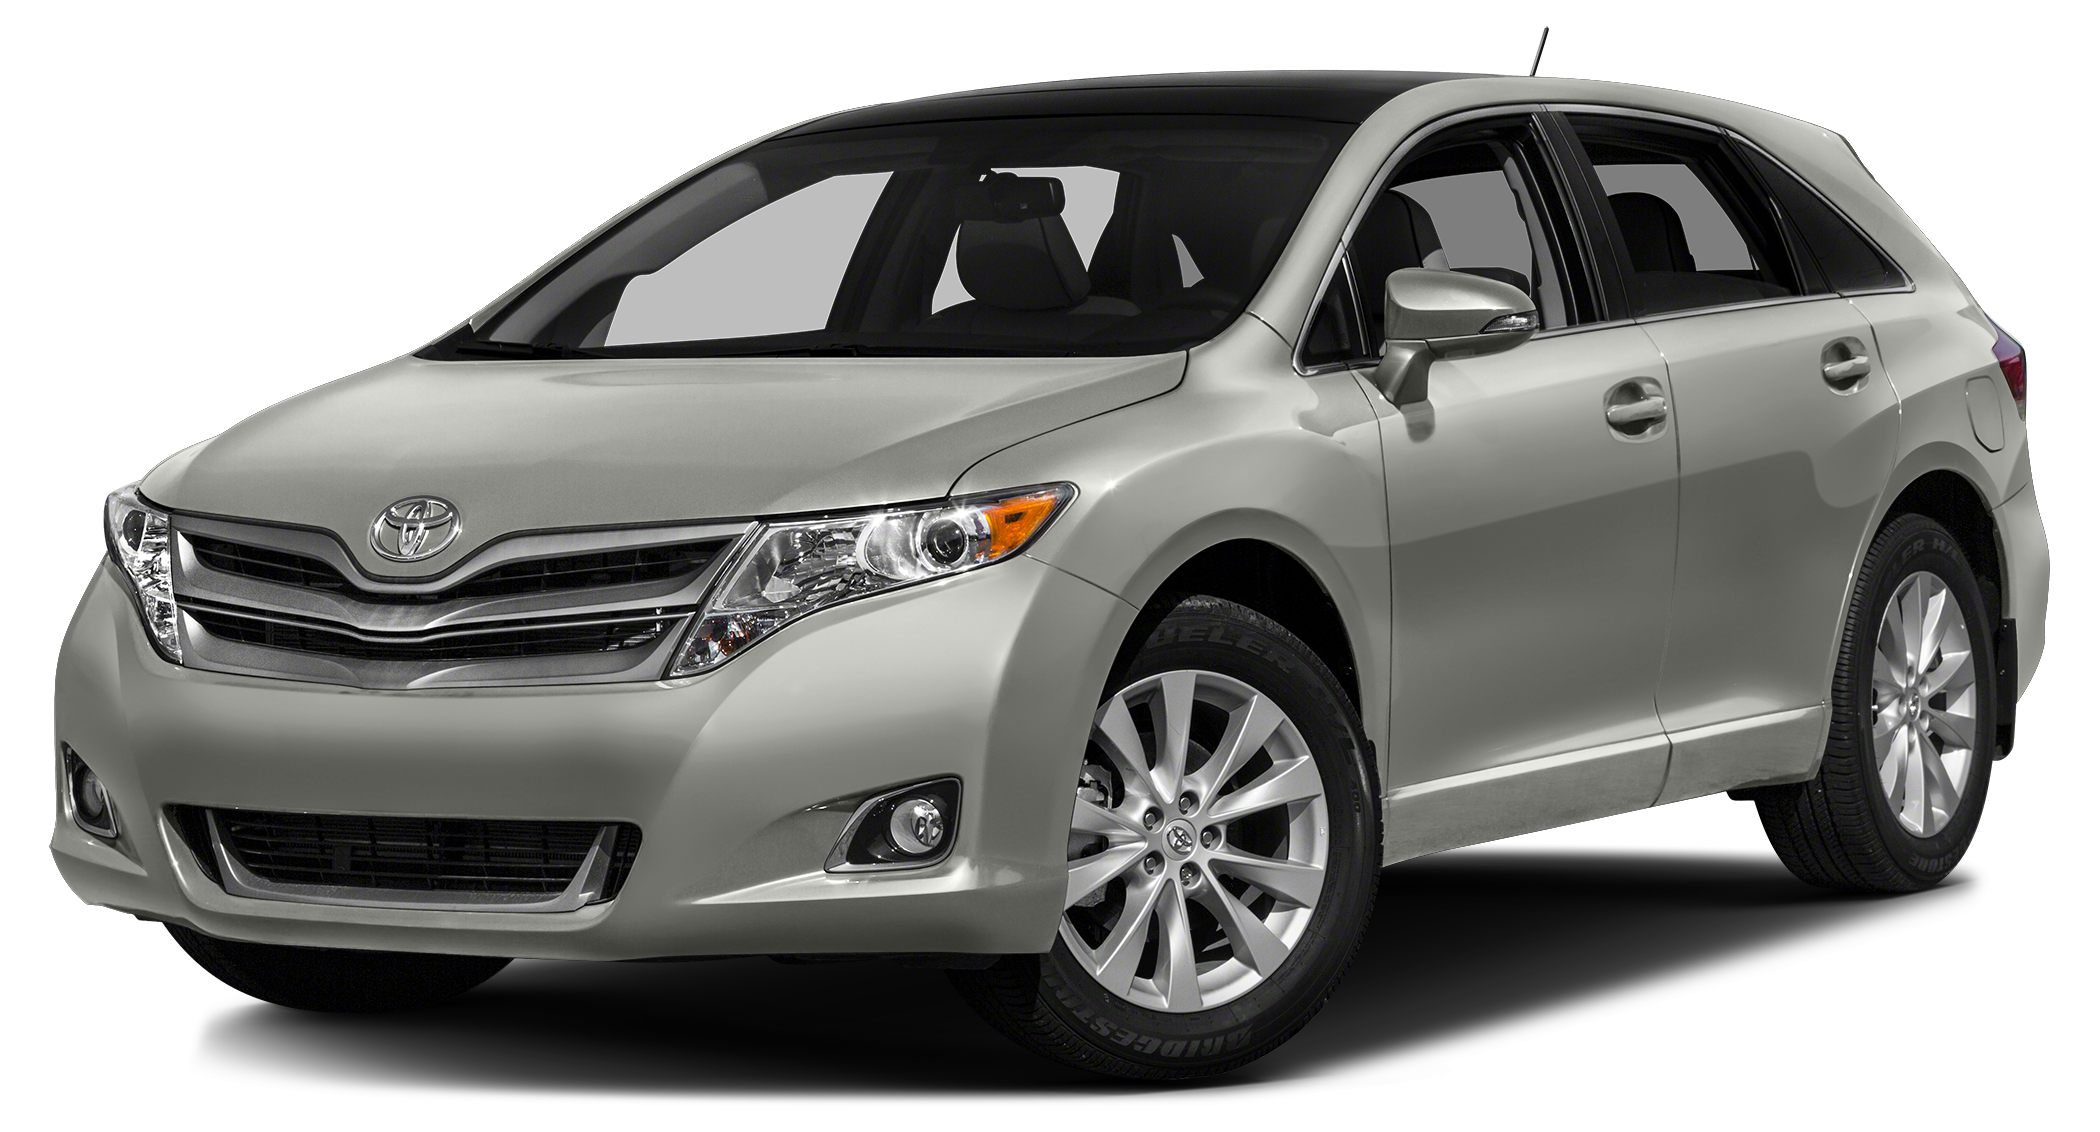 2015 Toyota Venza LE FUEL EFFICIENT 26 MPG Hwy20 MPG City LE trim CARFAX 1-Owner LOW MILES - 1